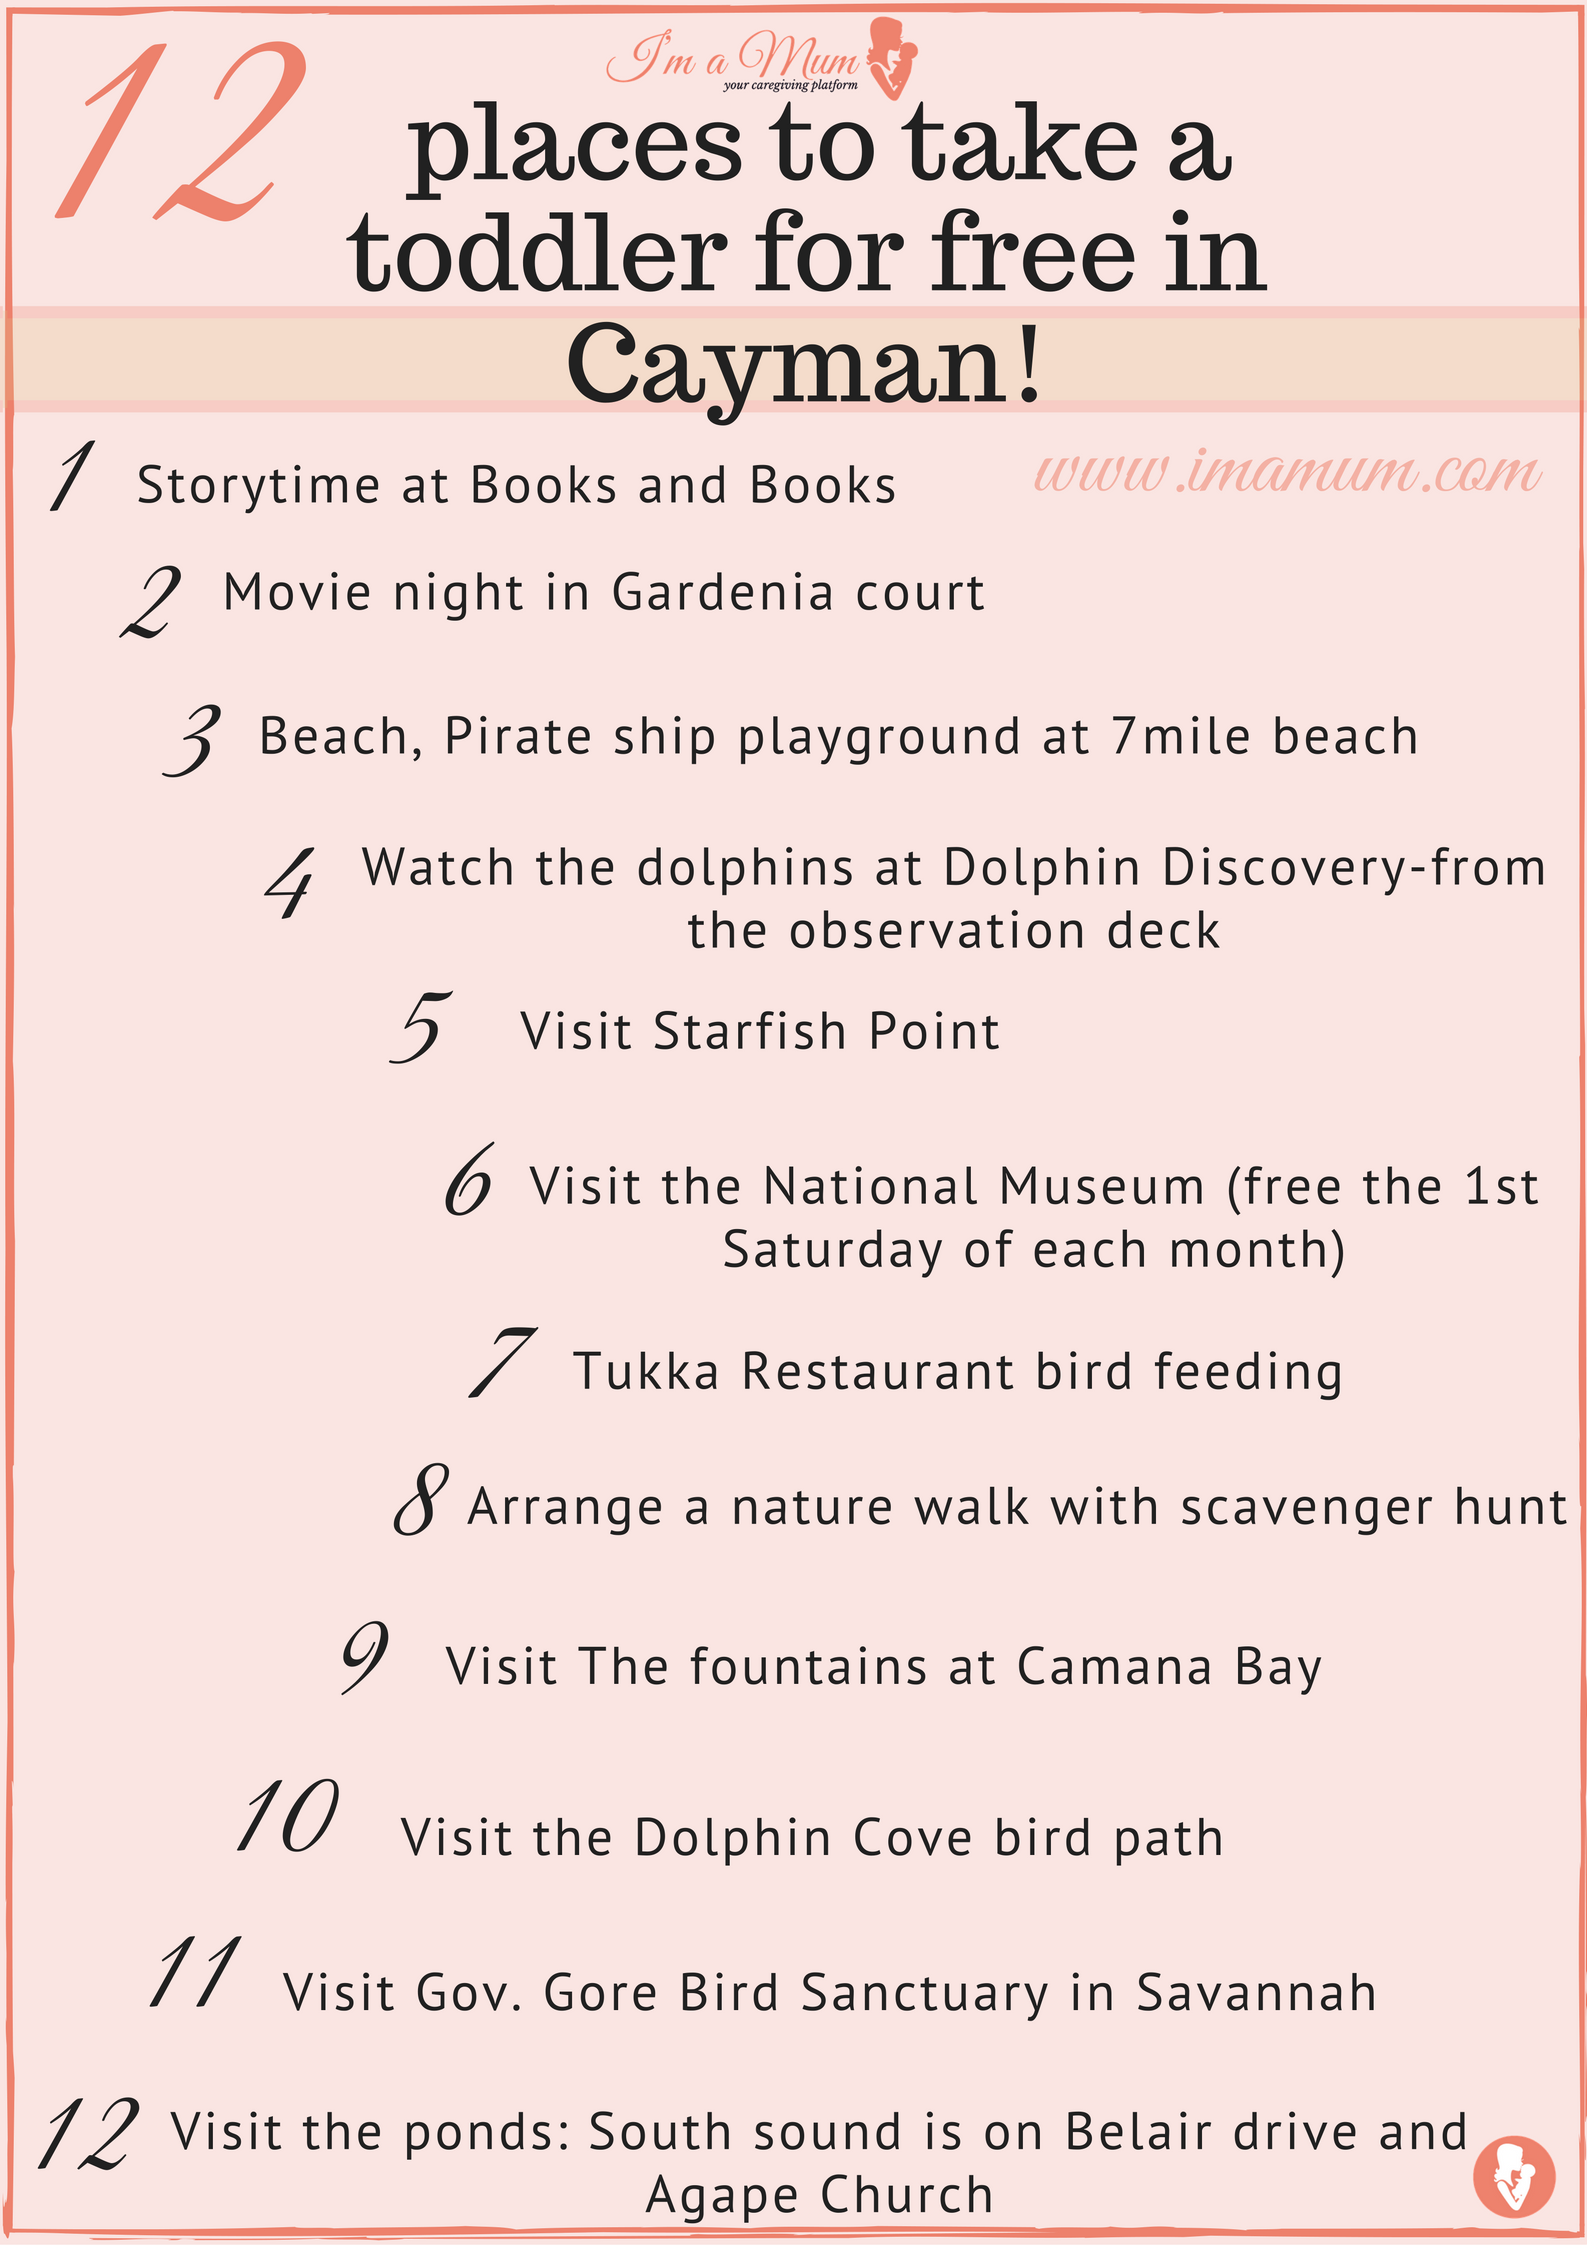 12 Places to take a toddler for free in Cayman